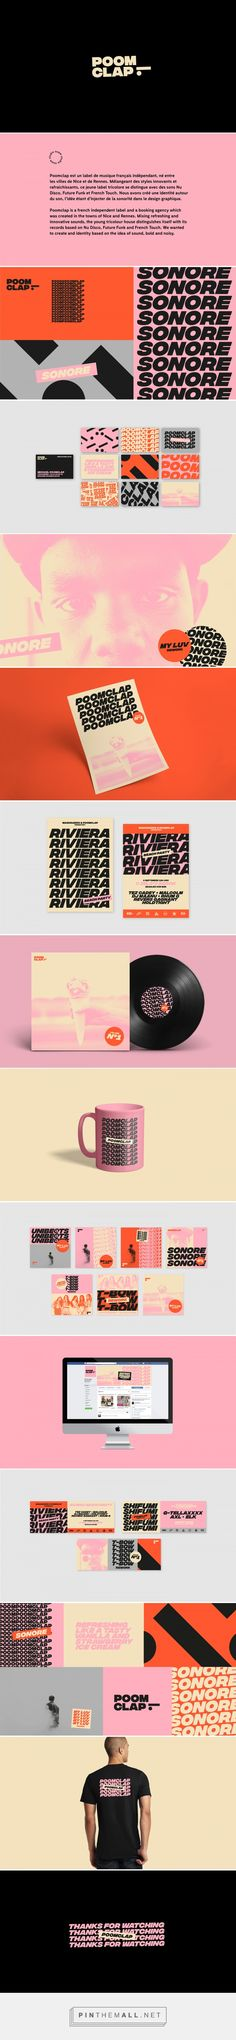 POOMCLAP French Record Label Branding by Studio Ouam   Fivestar Branding Agency – Design and Branding Agency & Curated Inspiration Gallery